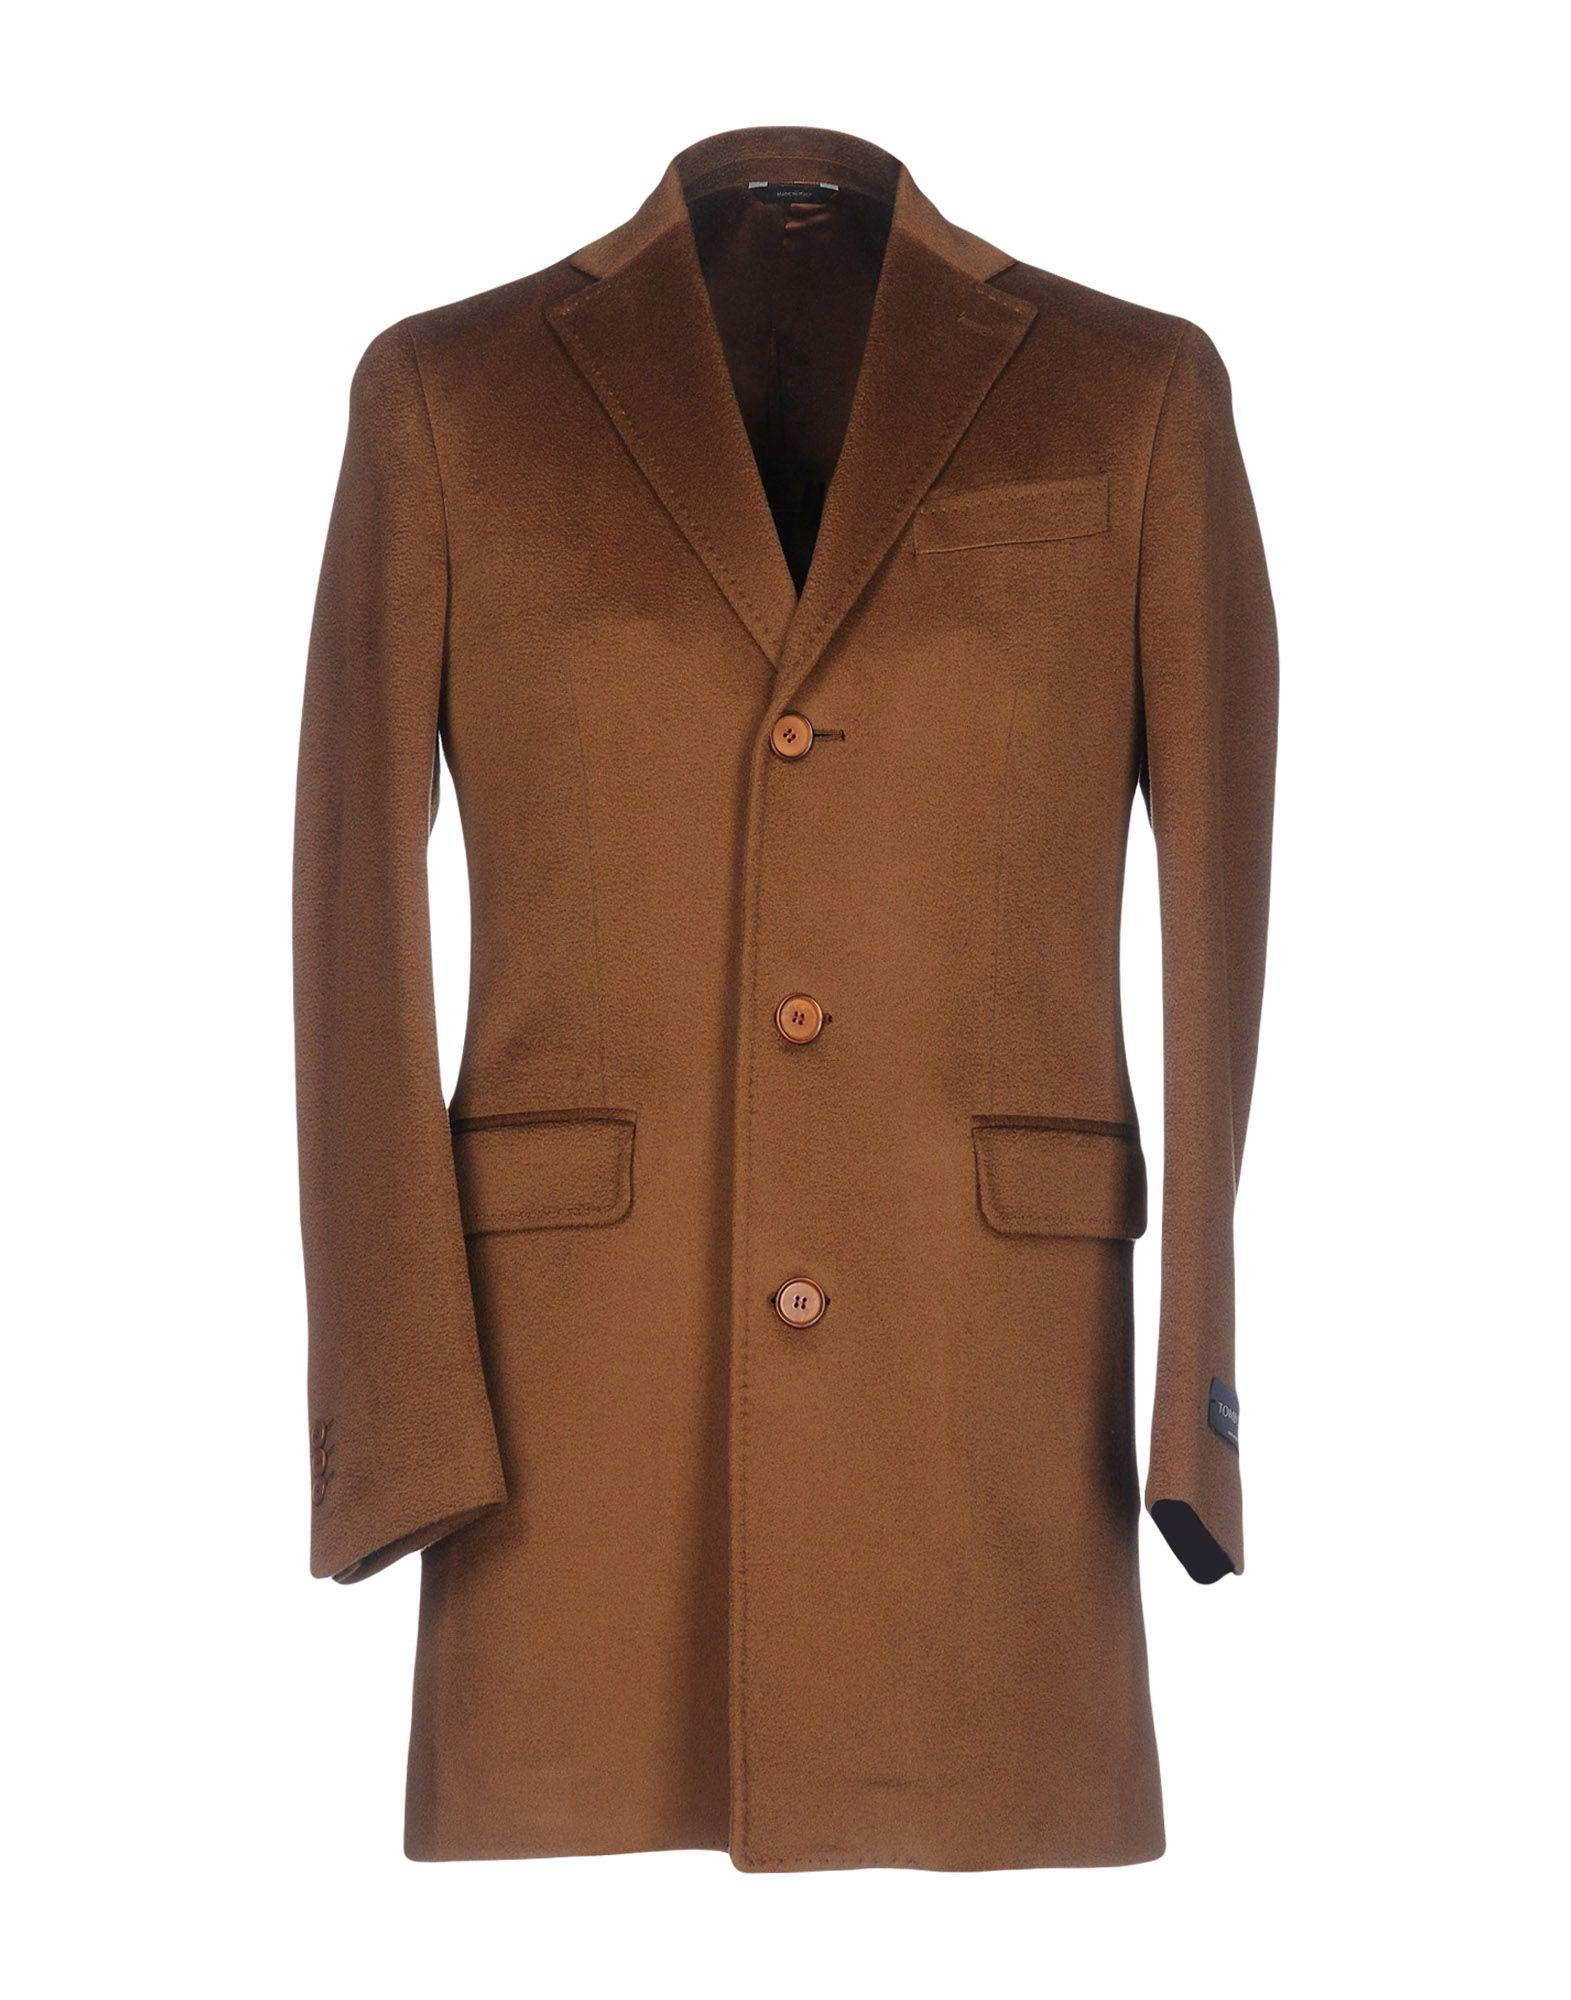 Tombolini Coats In Brown